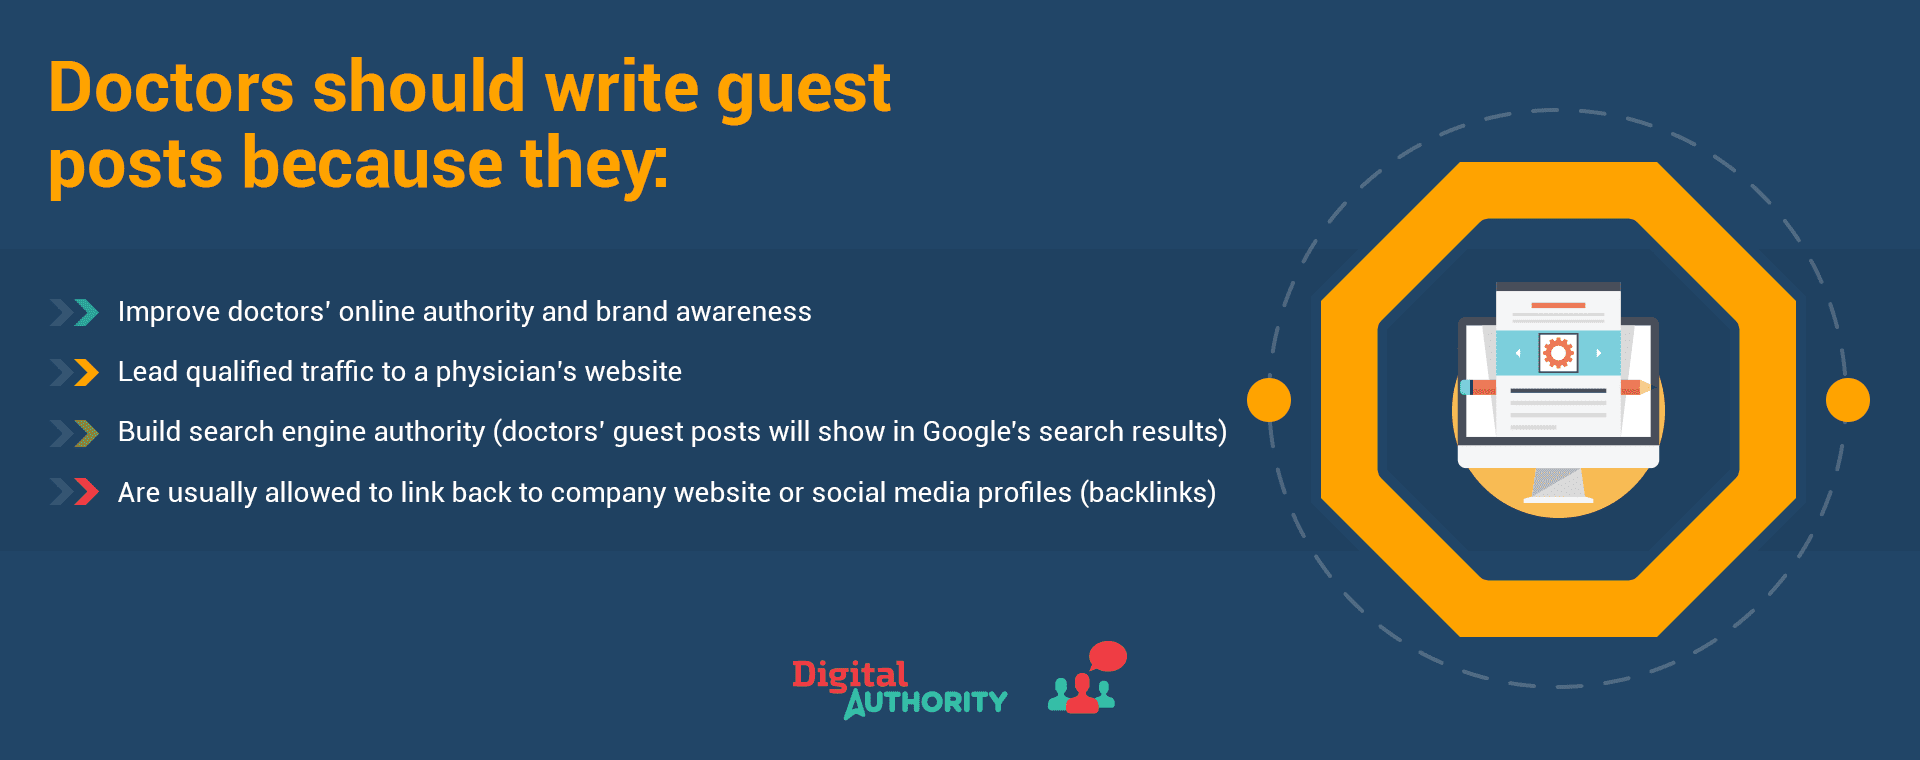 Doctors should write guest posts because they improvie doctors' online authority and brand awareness. Lead qualified traffic to a physician's website. Build search engine authority and help build backlinks to company website or social media profiles